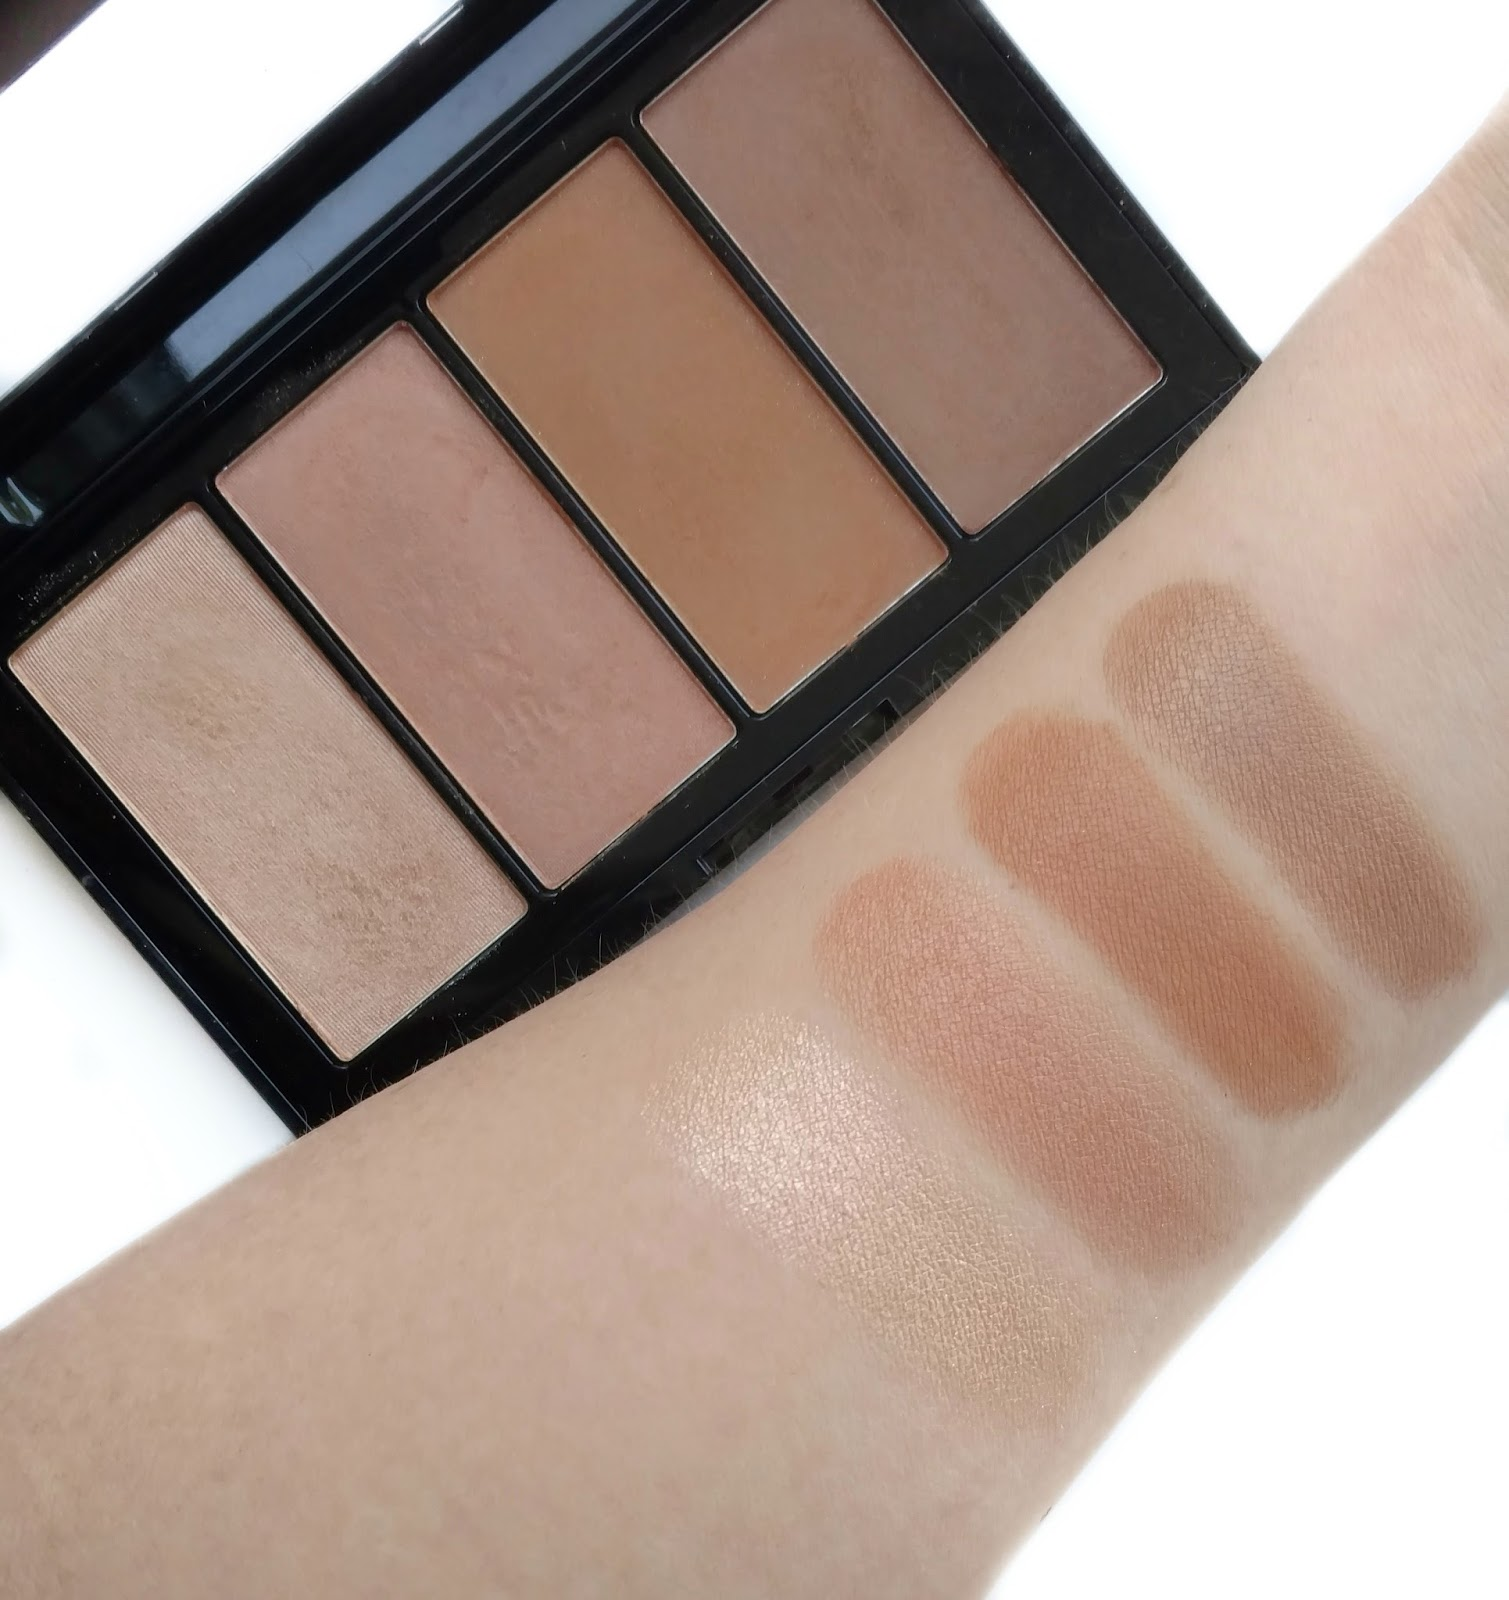 Maybelline Master Bronze Palette Review & Swatches - Beauddiction